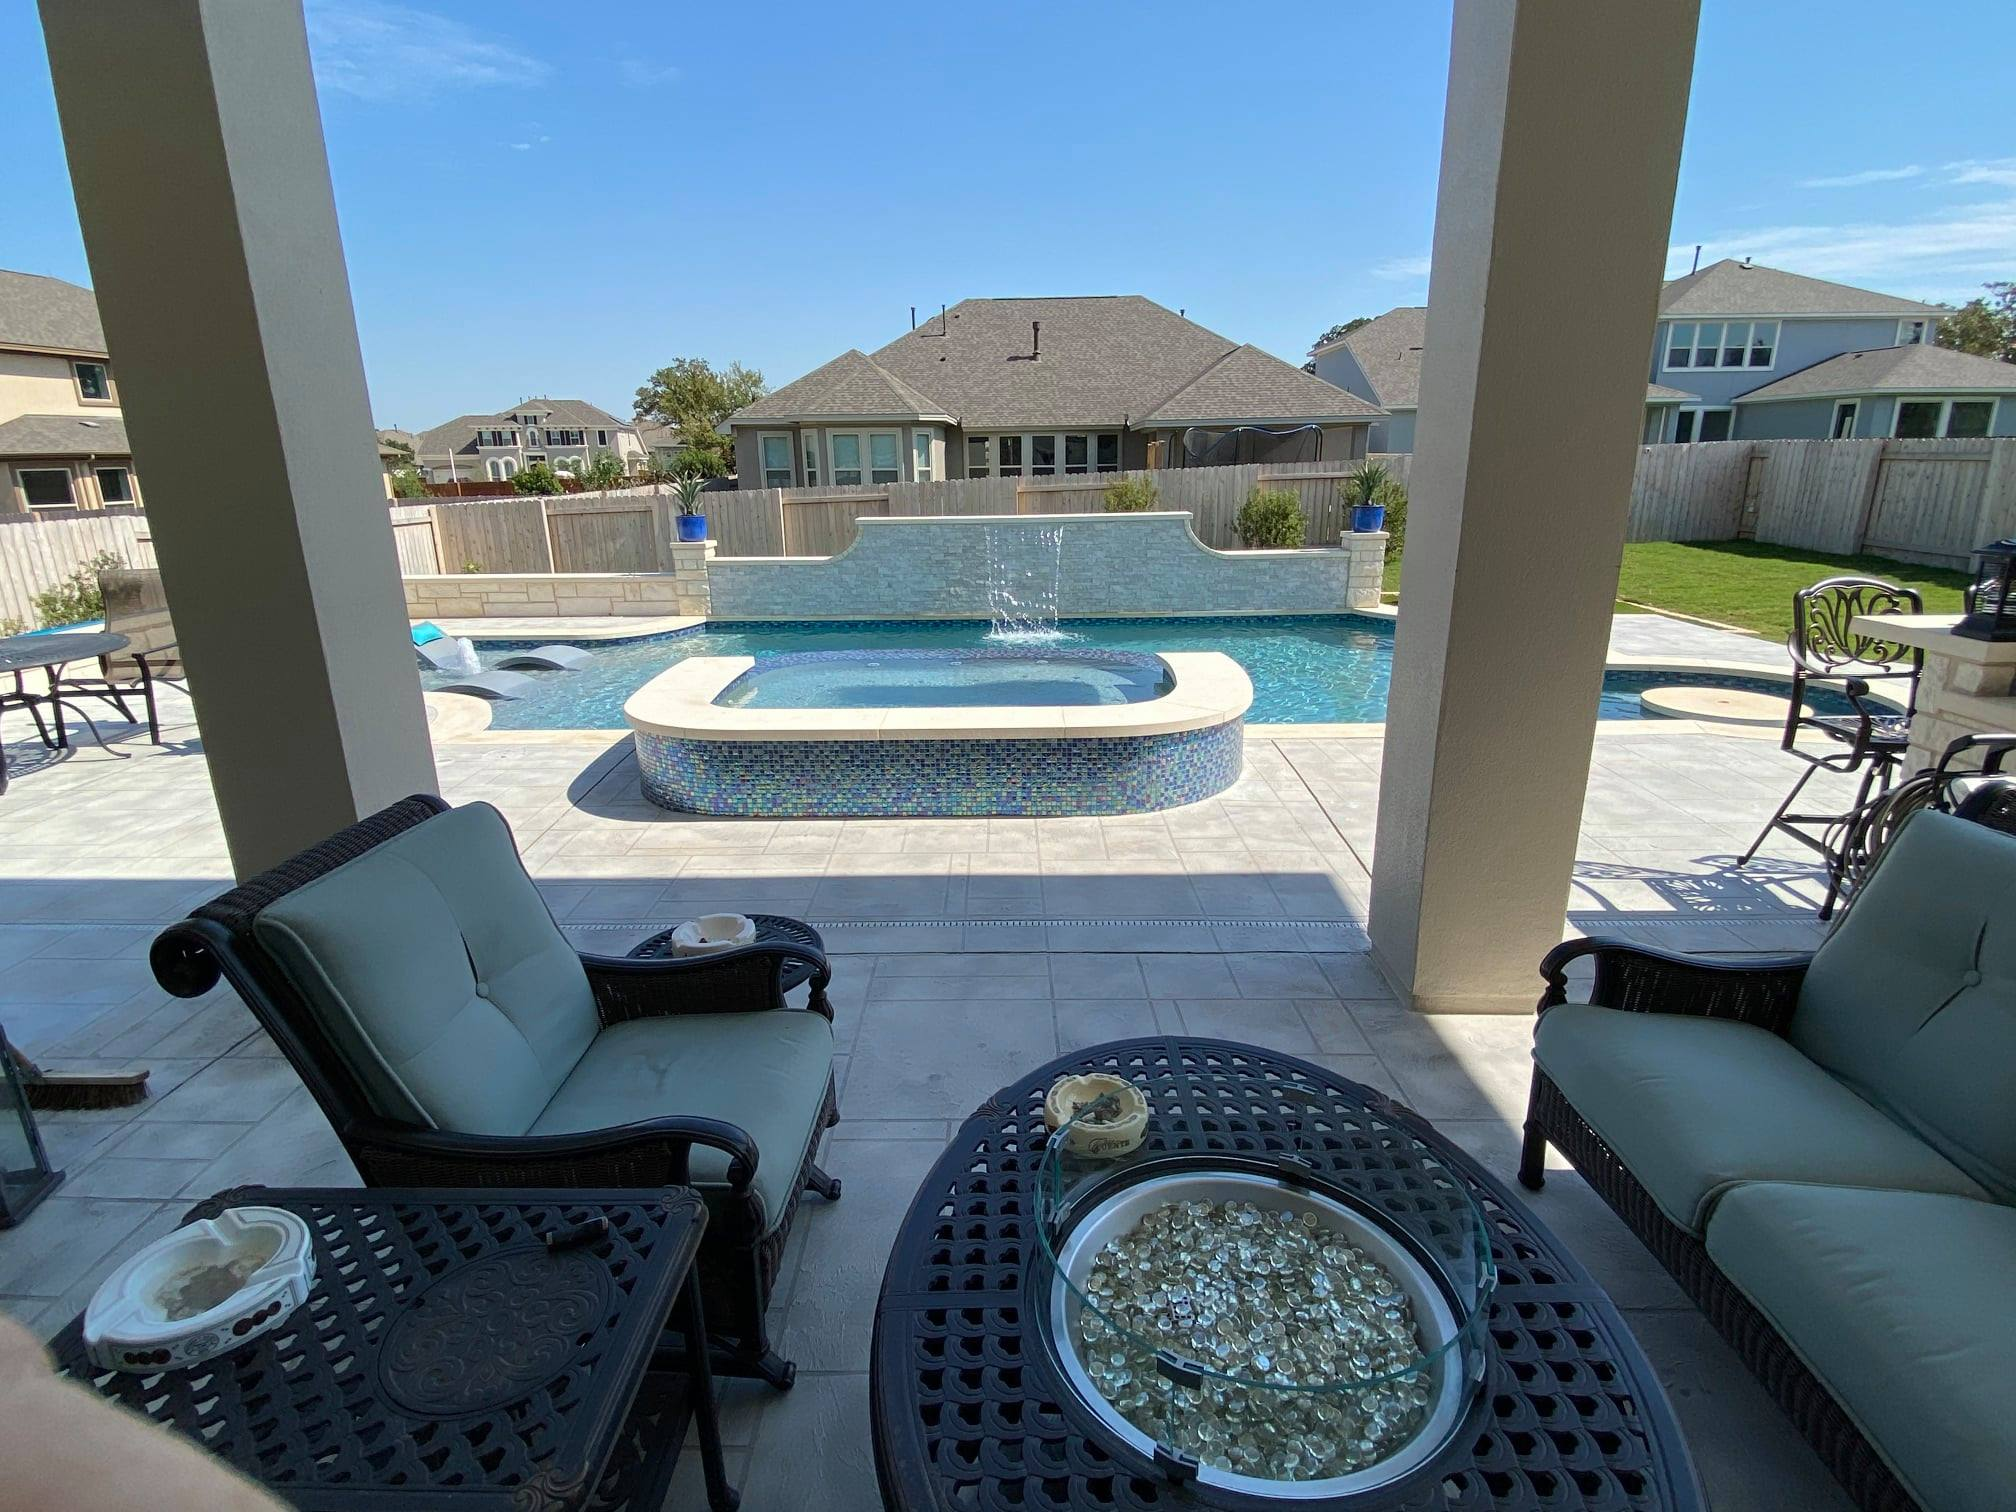 Leander party pool and spa